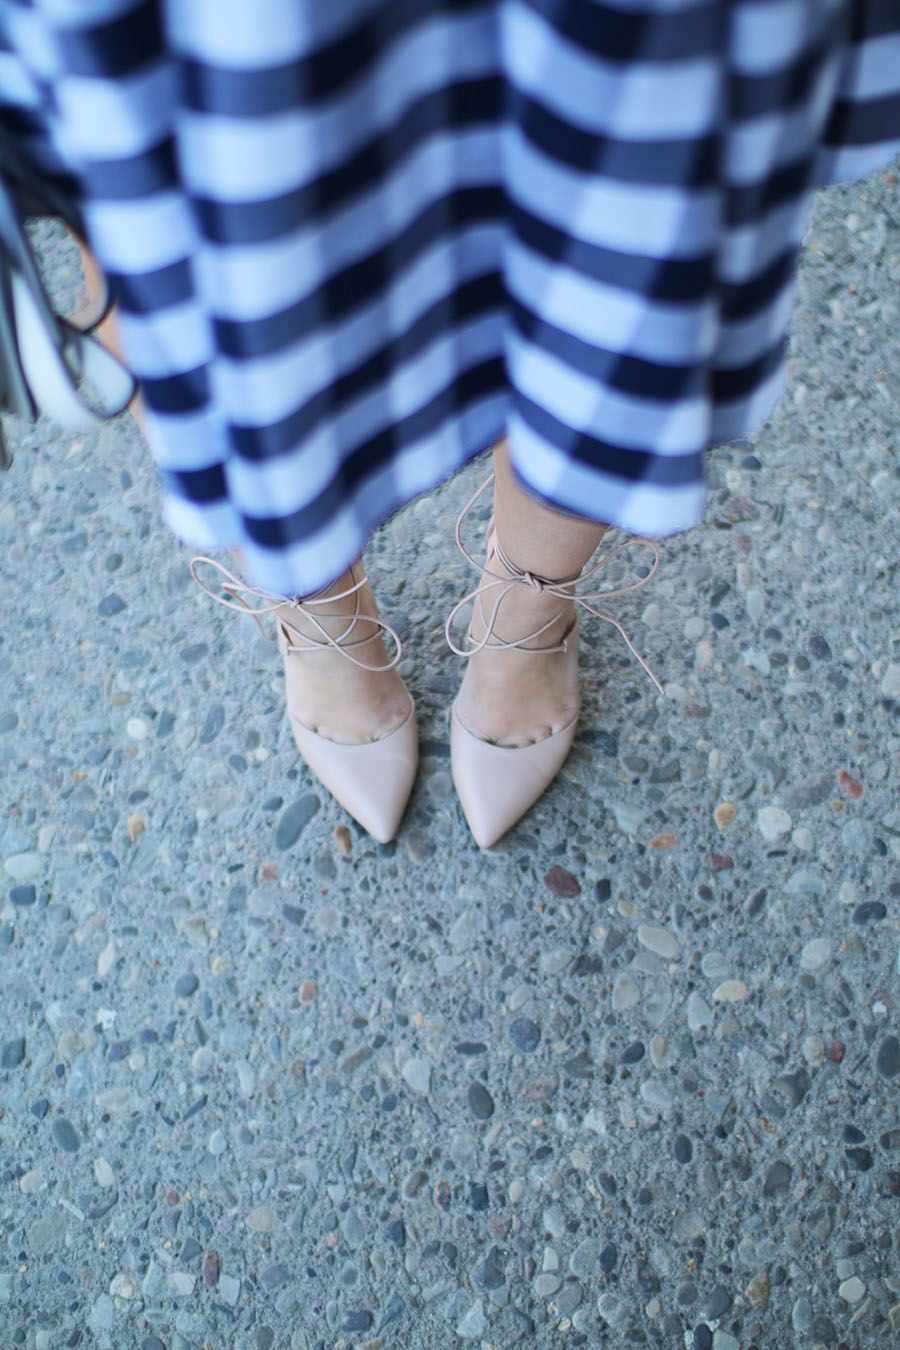 Spring Shoes, Lace Up Heels, Nude Pumps, Le Chateau Shoes, Summer Heels